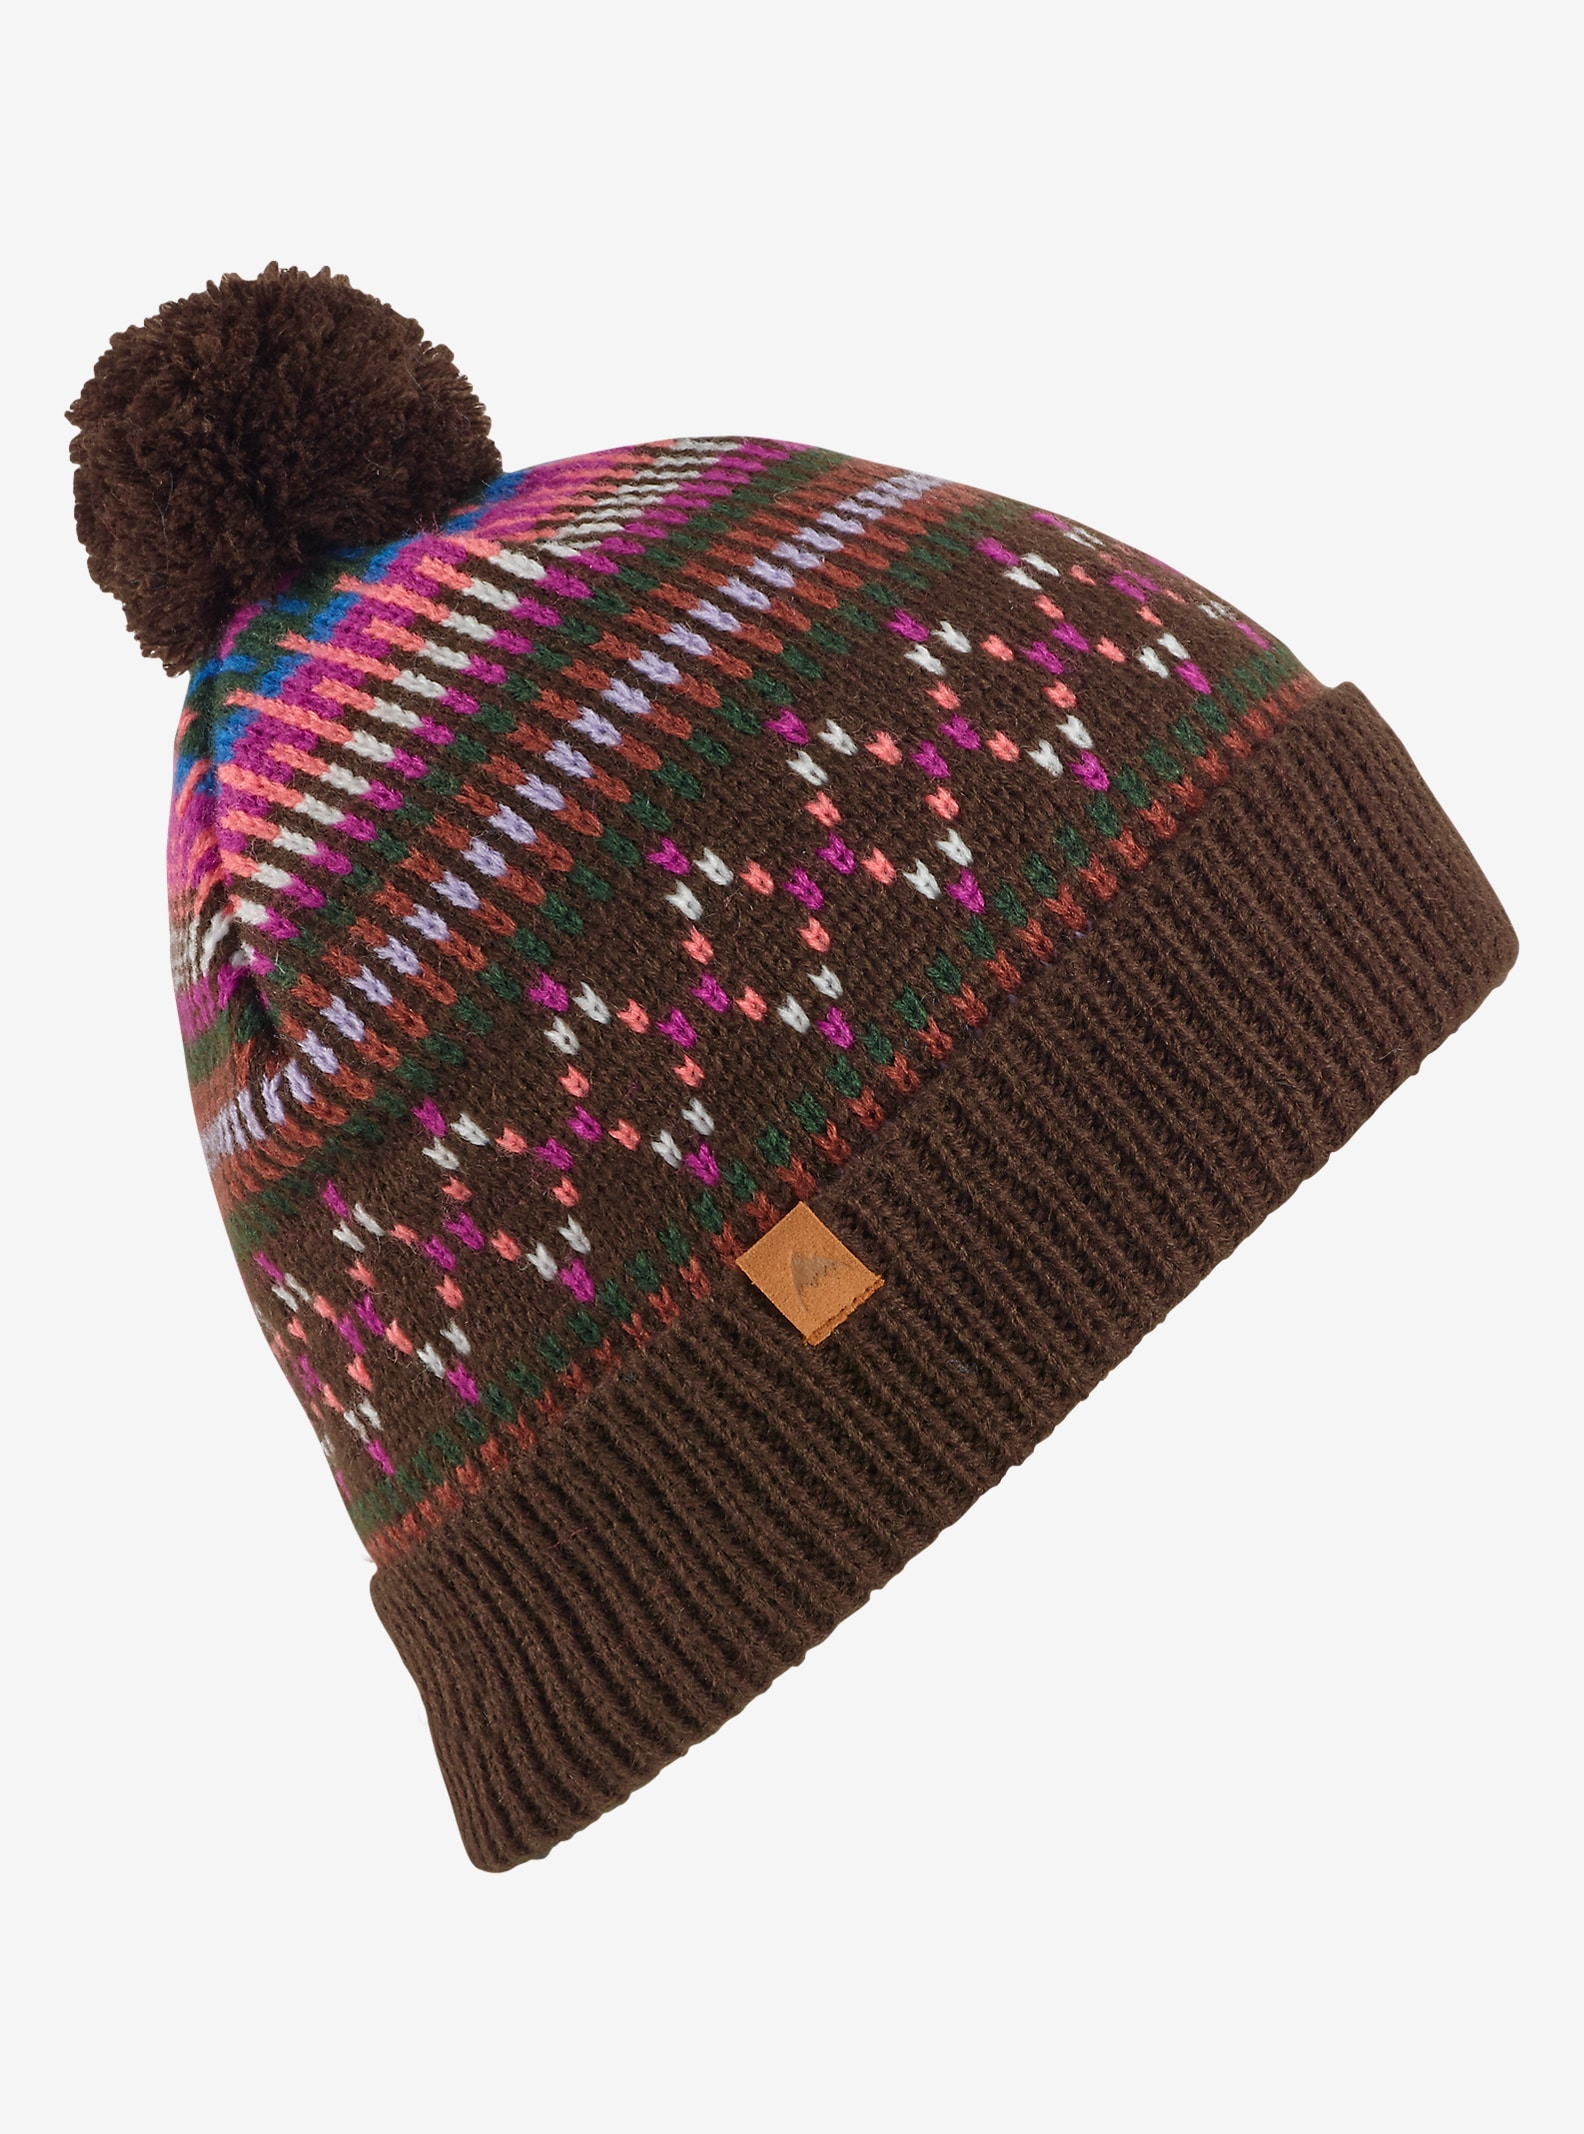 Burton Talini Beanie shown in Mocha